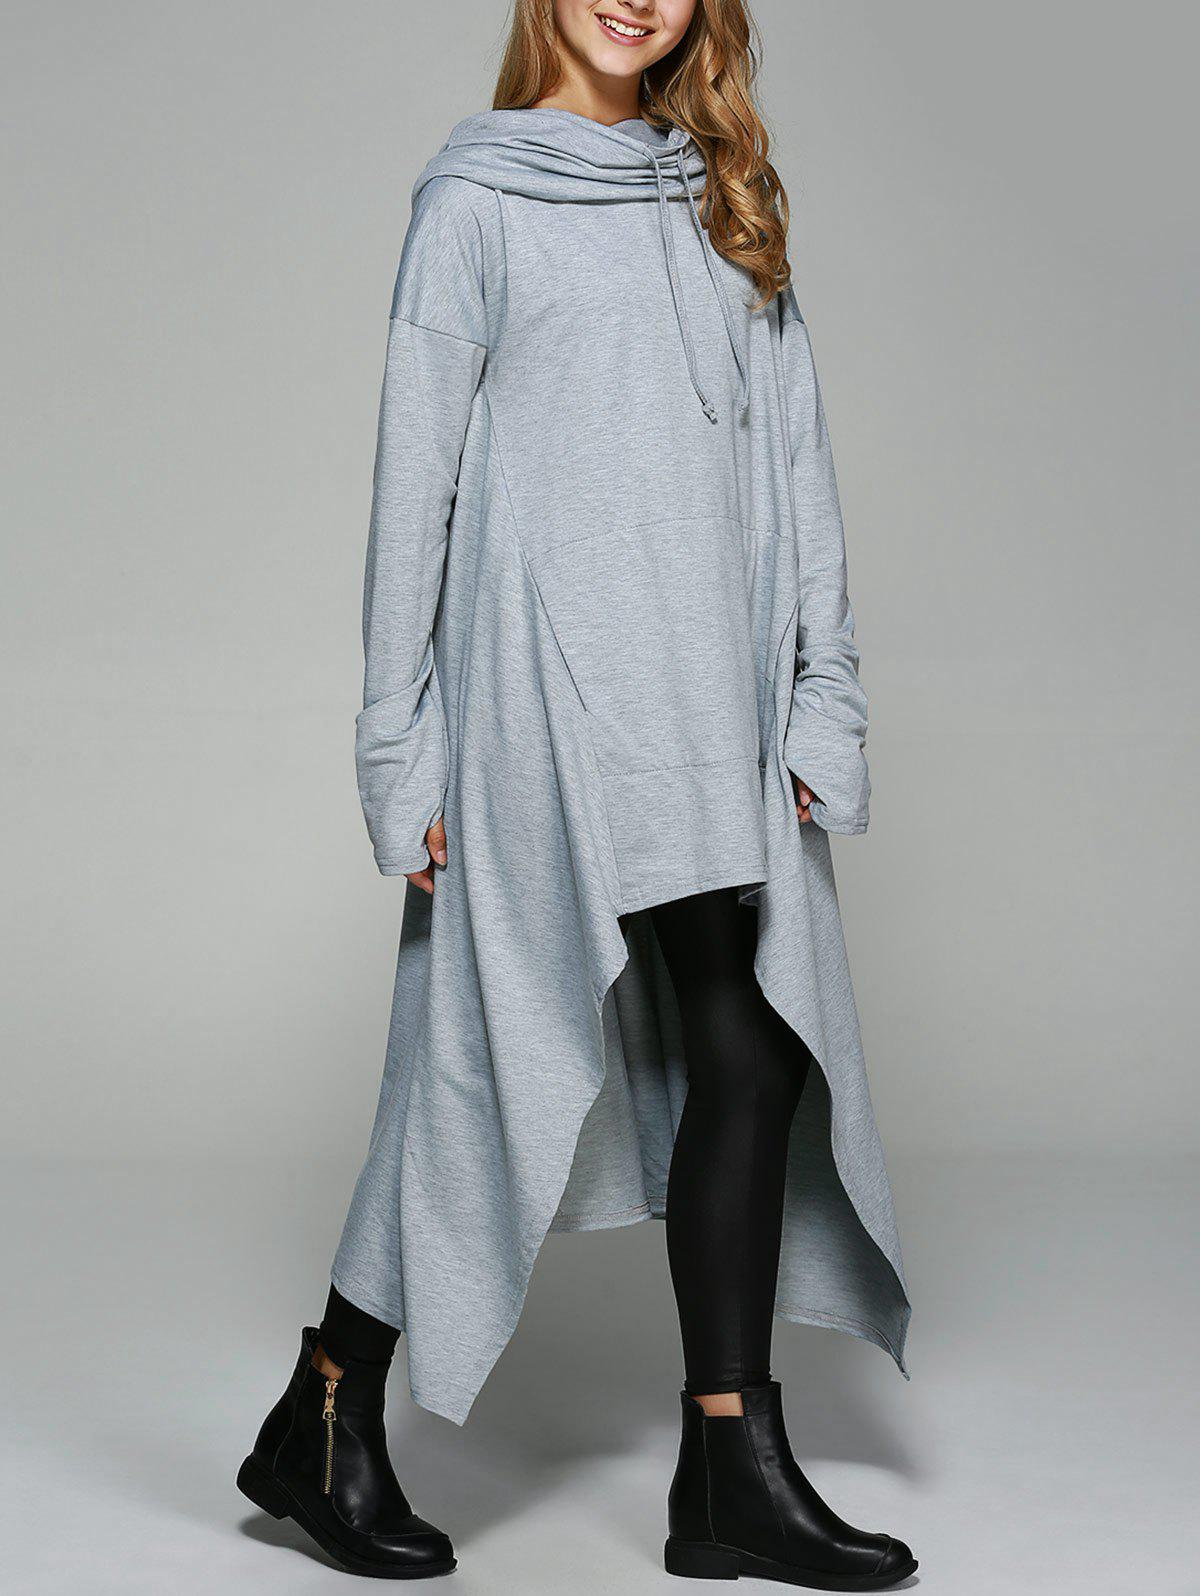 Discount Asymmetrical Pocket Design Loose-Fitting Neck Hoodie